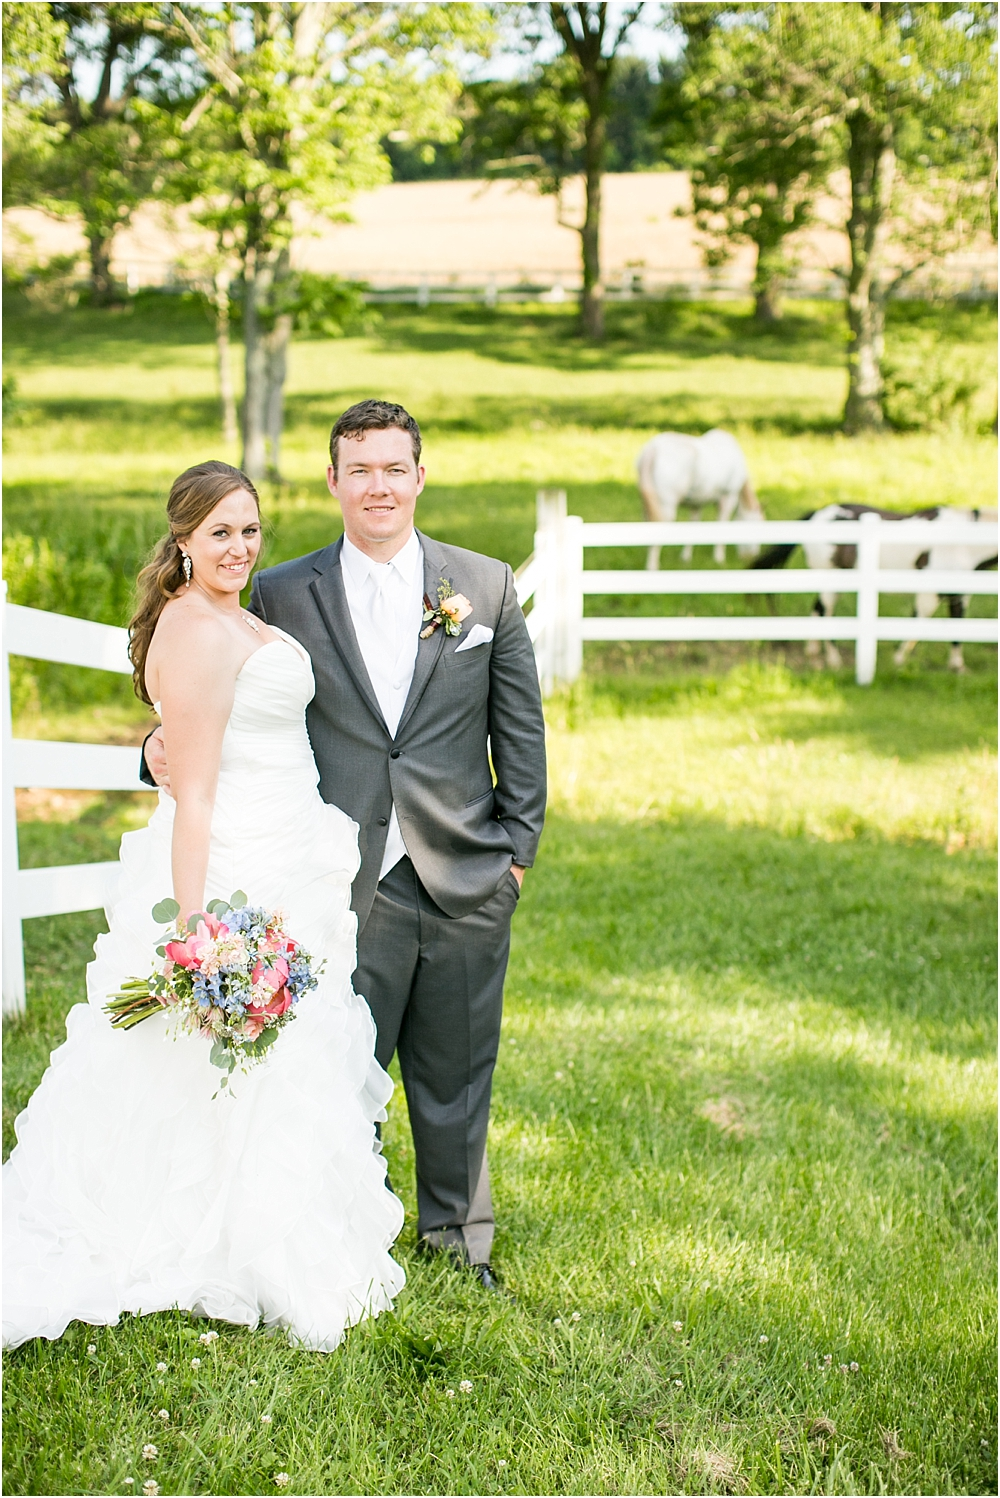 randolph wedding parkton private residence tent wedding living radiant photography photos_0064.jpg